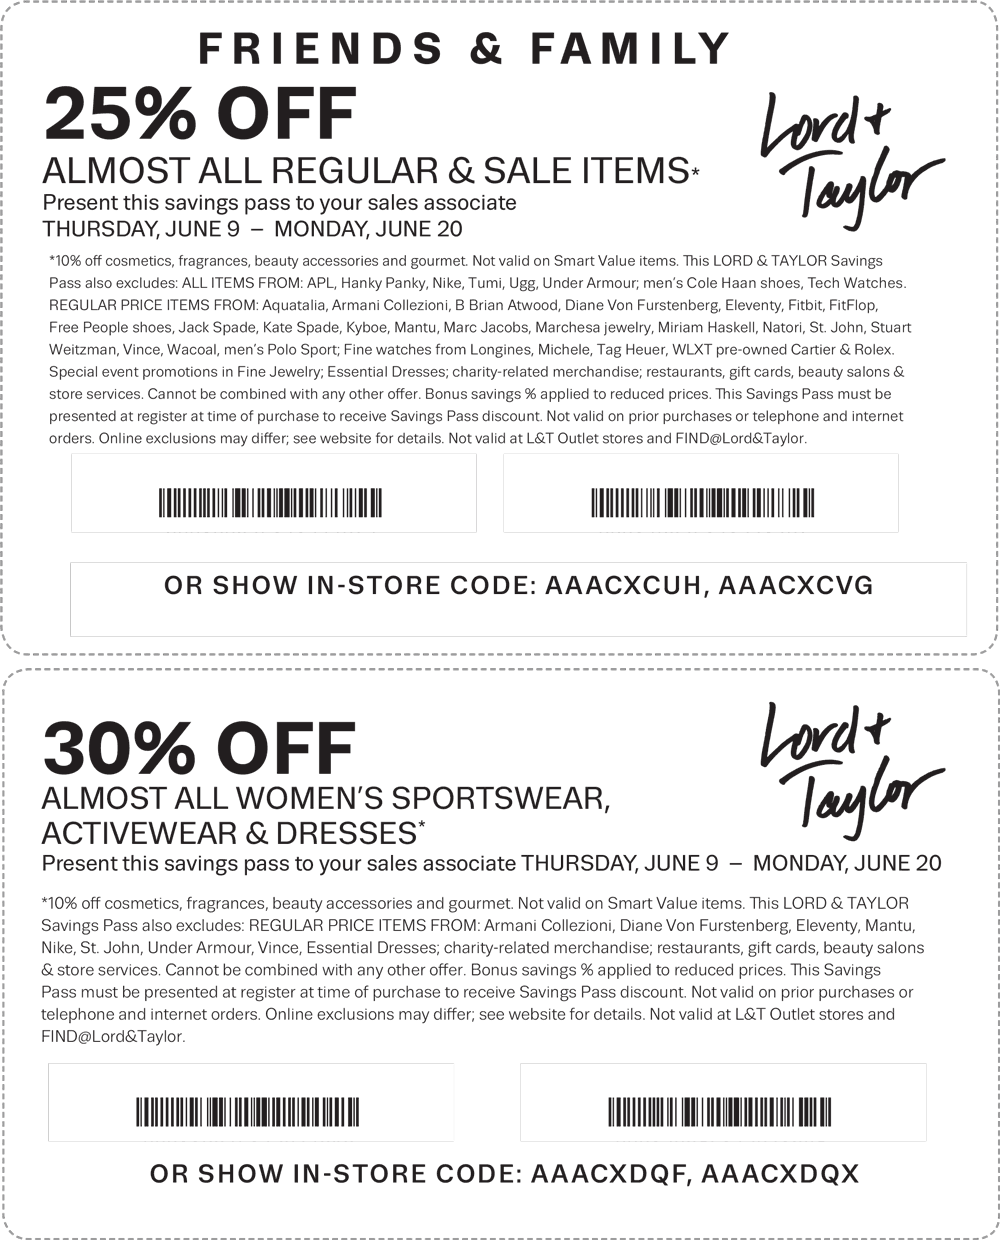 Lord & Taylor Coupon January 2017 25% off & more at Lord & Taylor, or online via promo code FRIENDS